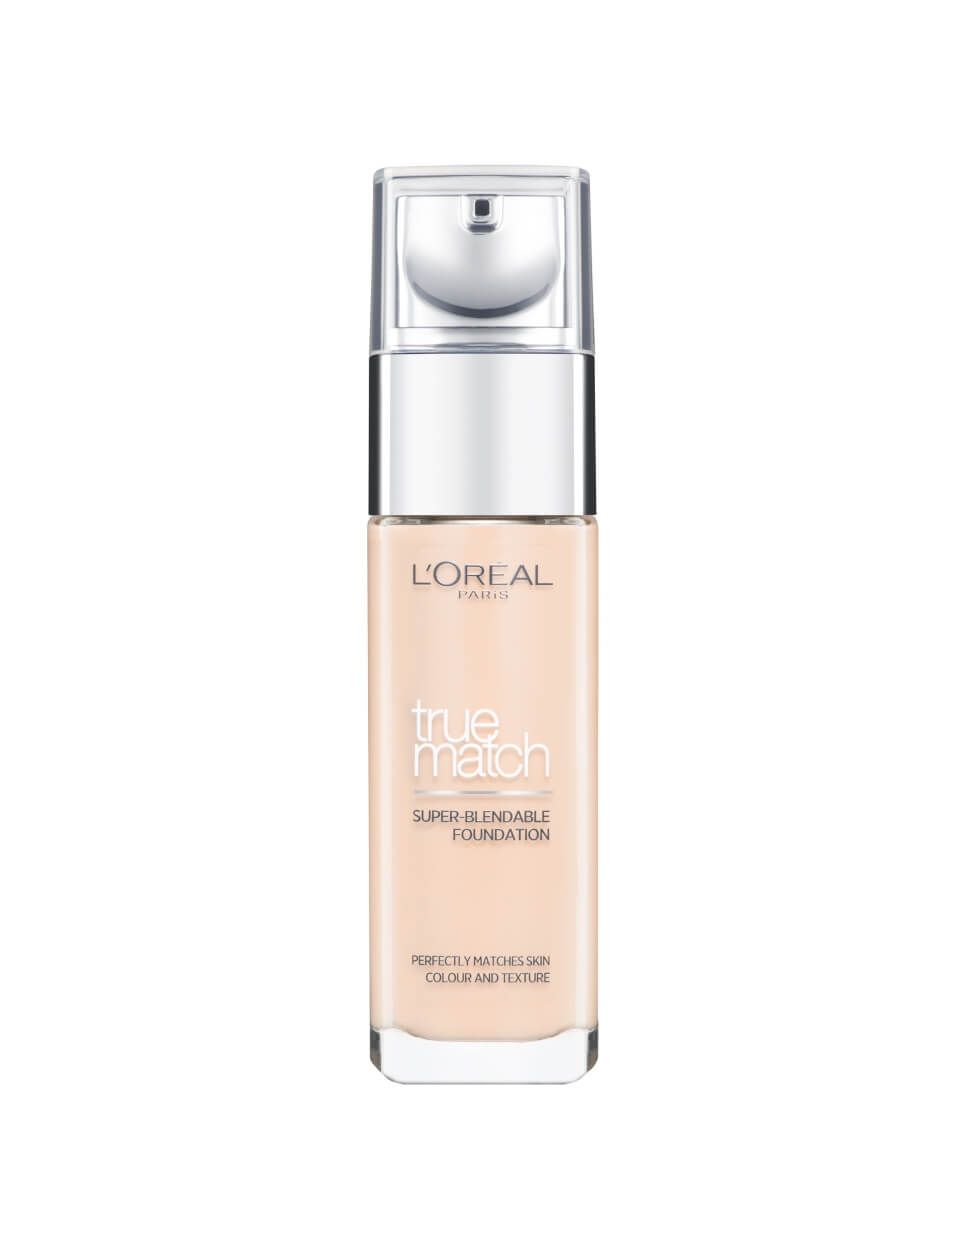 L'Oreal Paris True Match Liquid Foundation - 1.N Ivory -  | Cosmetics Diary